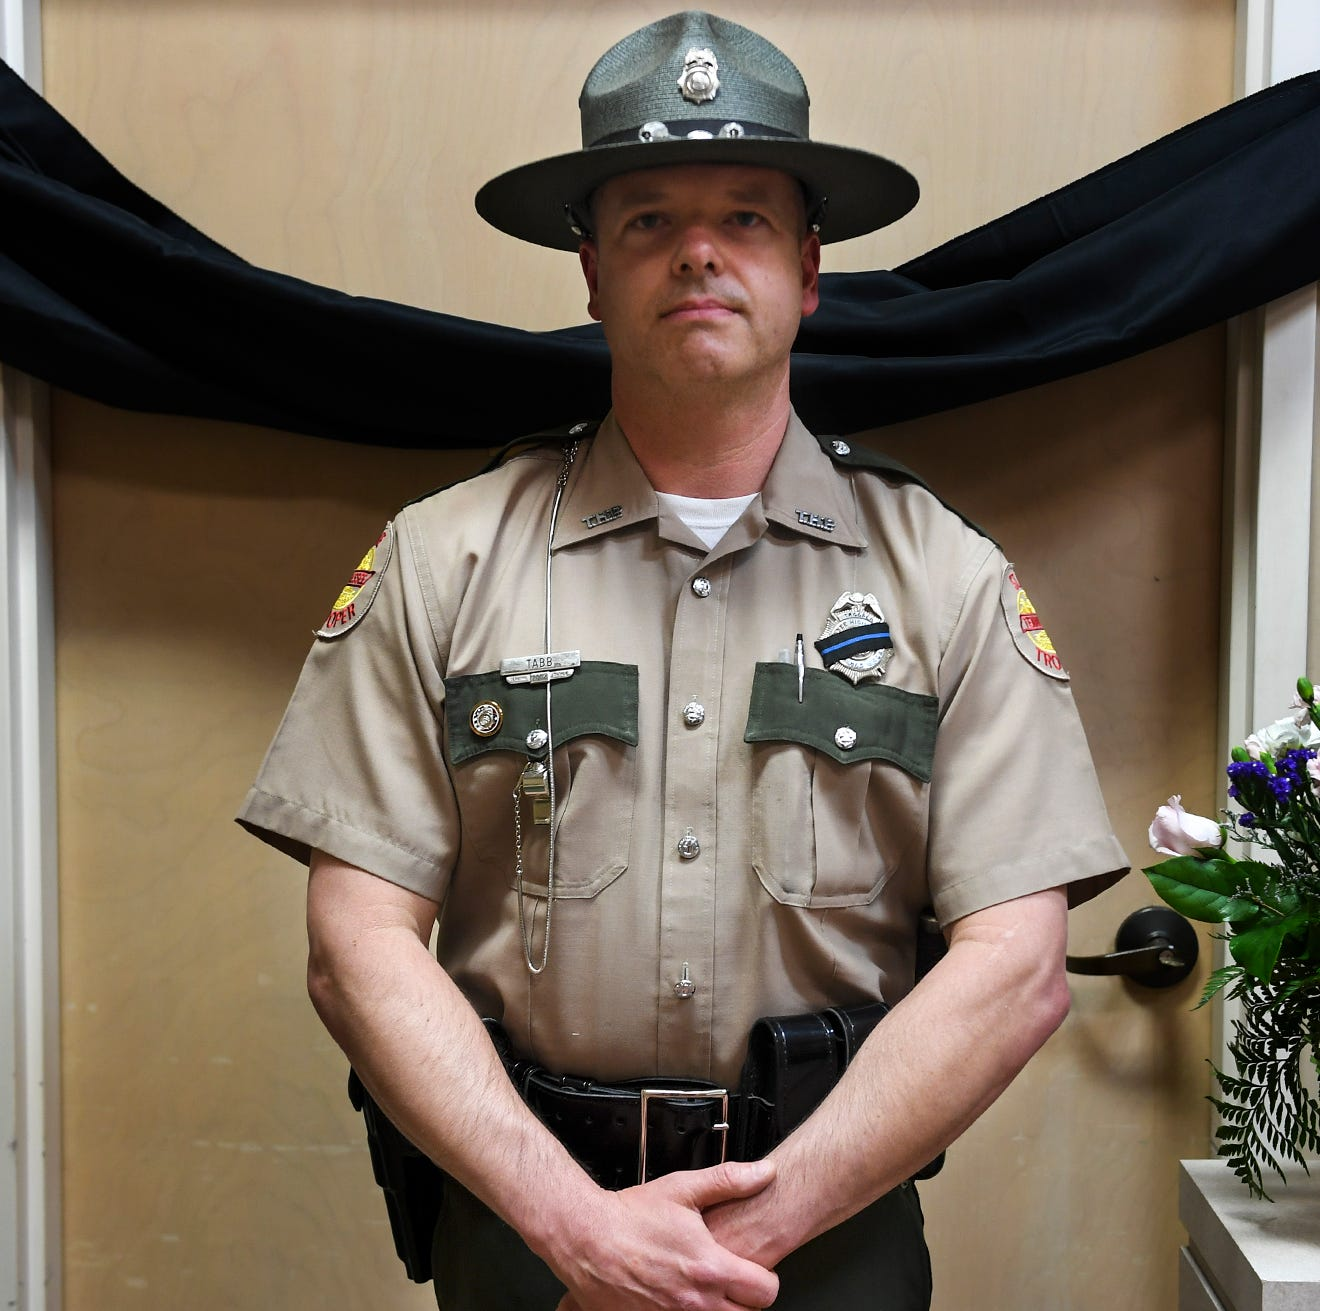 'We're all brothers': Law enforcement officers share grief after death of Trooper Matthew Gatti